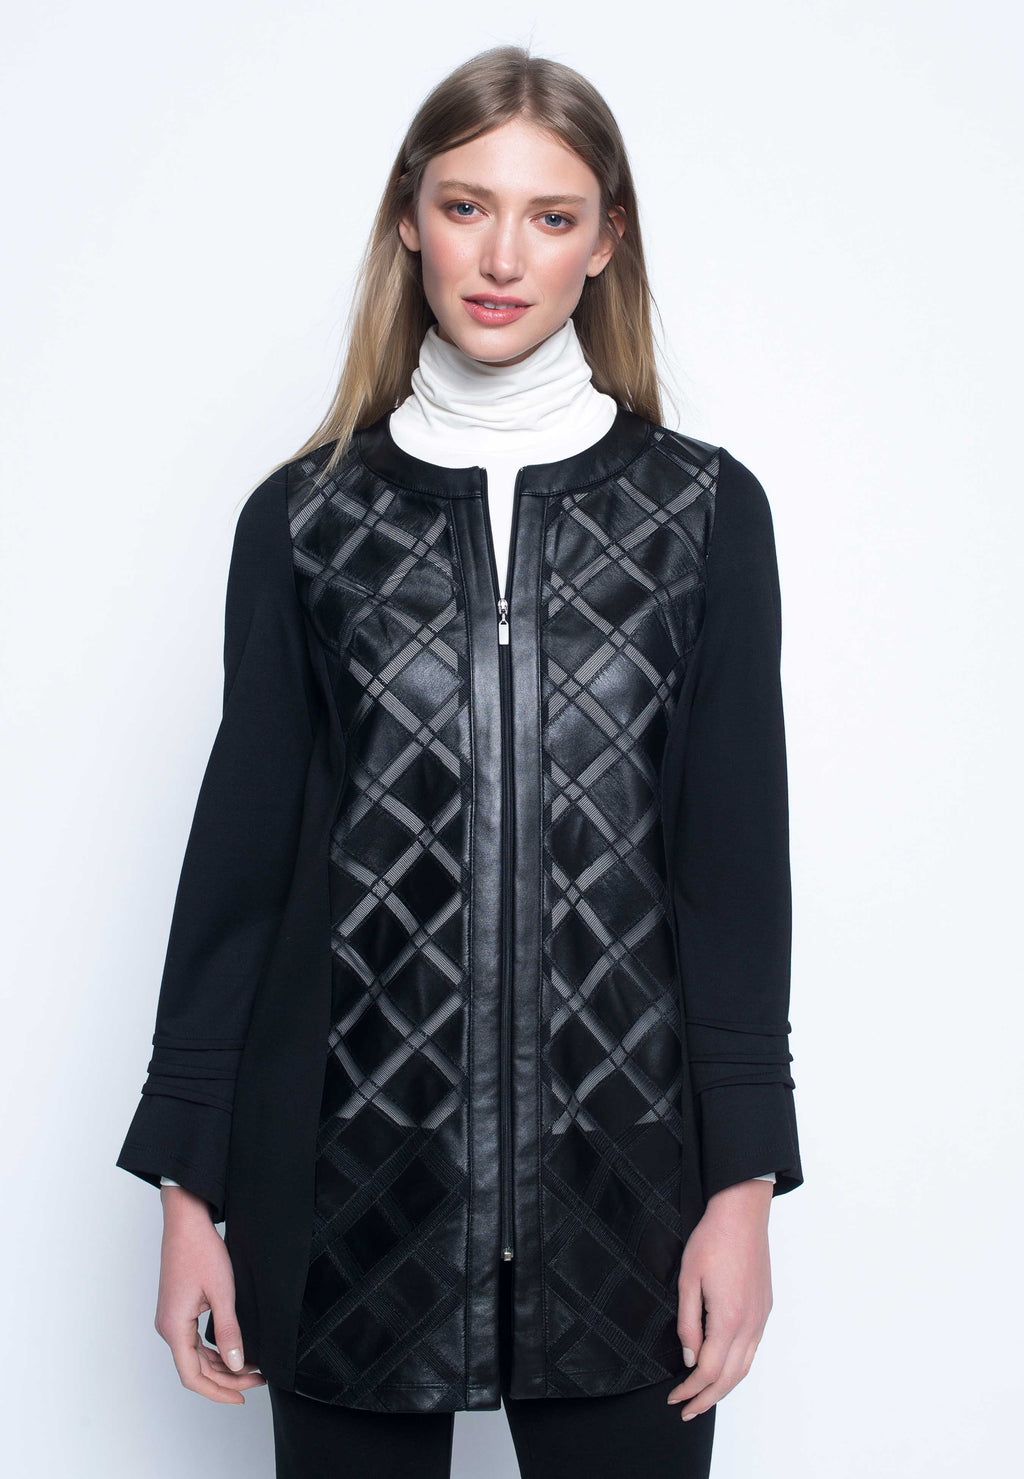 Diamond Basket Weave Jacket